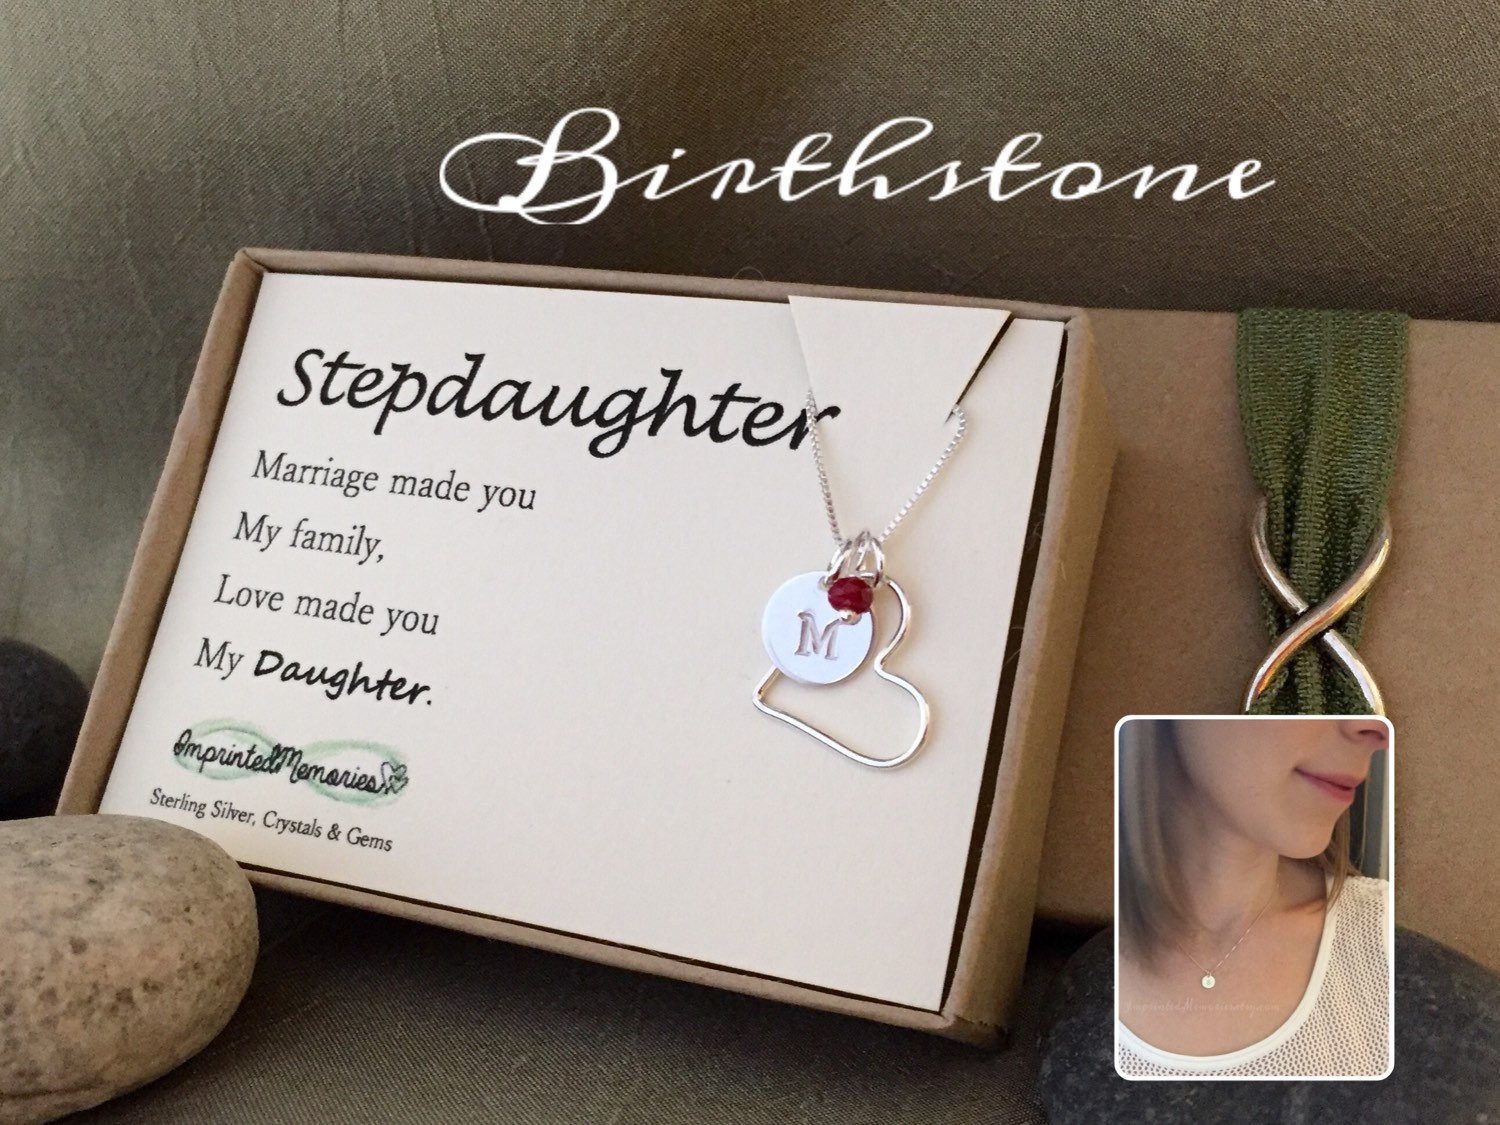 Best ideas about Wedding Gift Ideas For Daughter . Save or Pin Stepdaughter t new stepdaughter wedding t marriage Now.